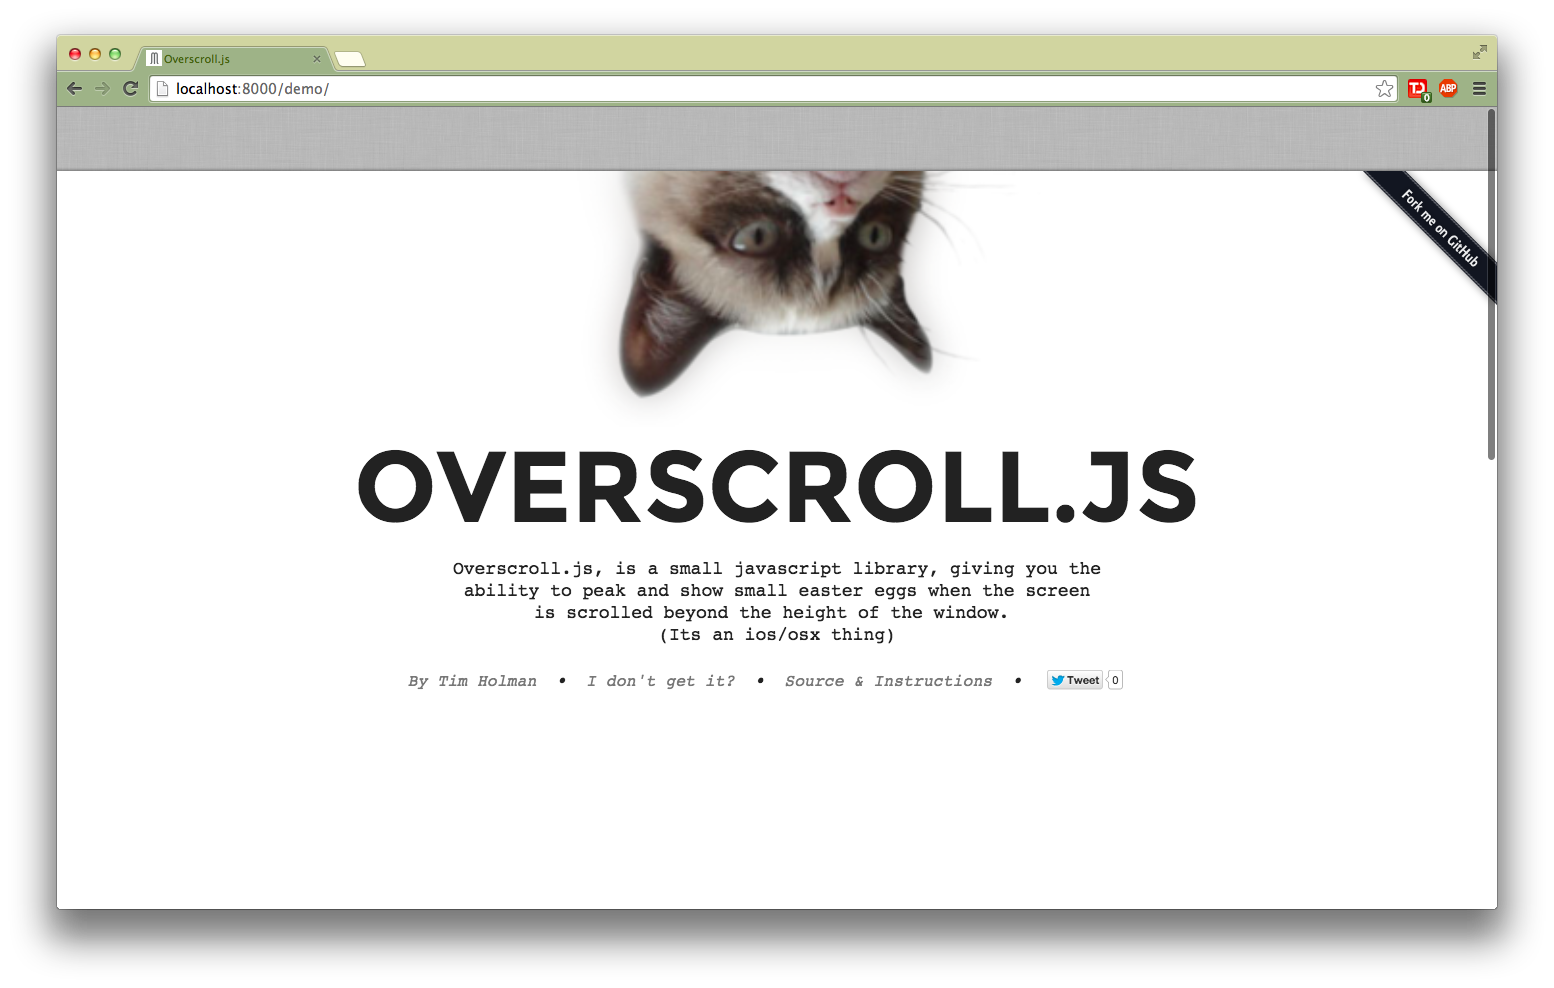 Overscroll.js doing its thing